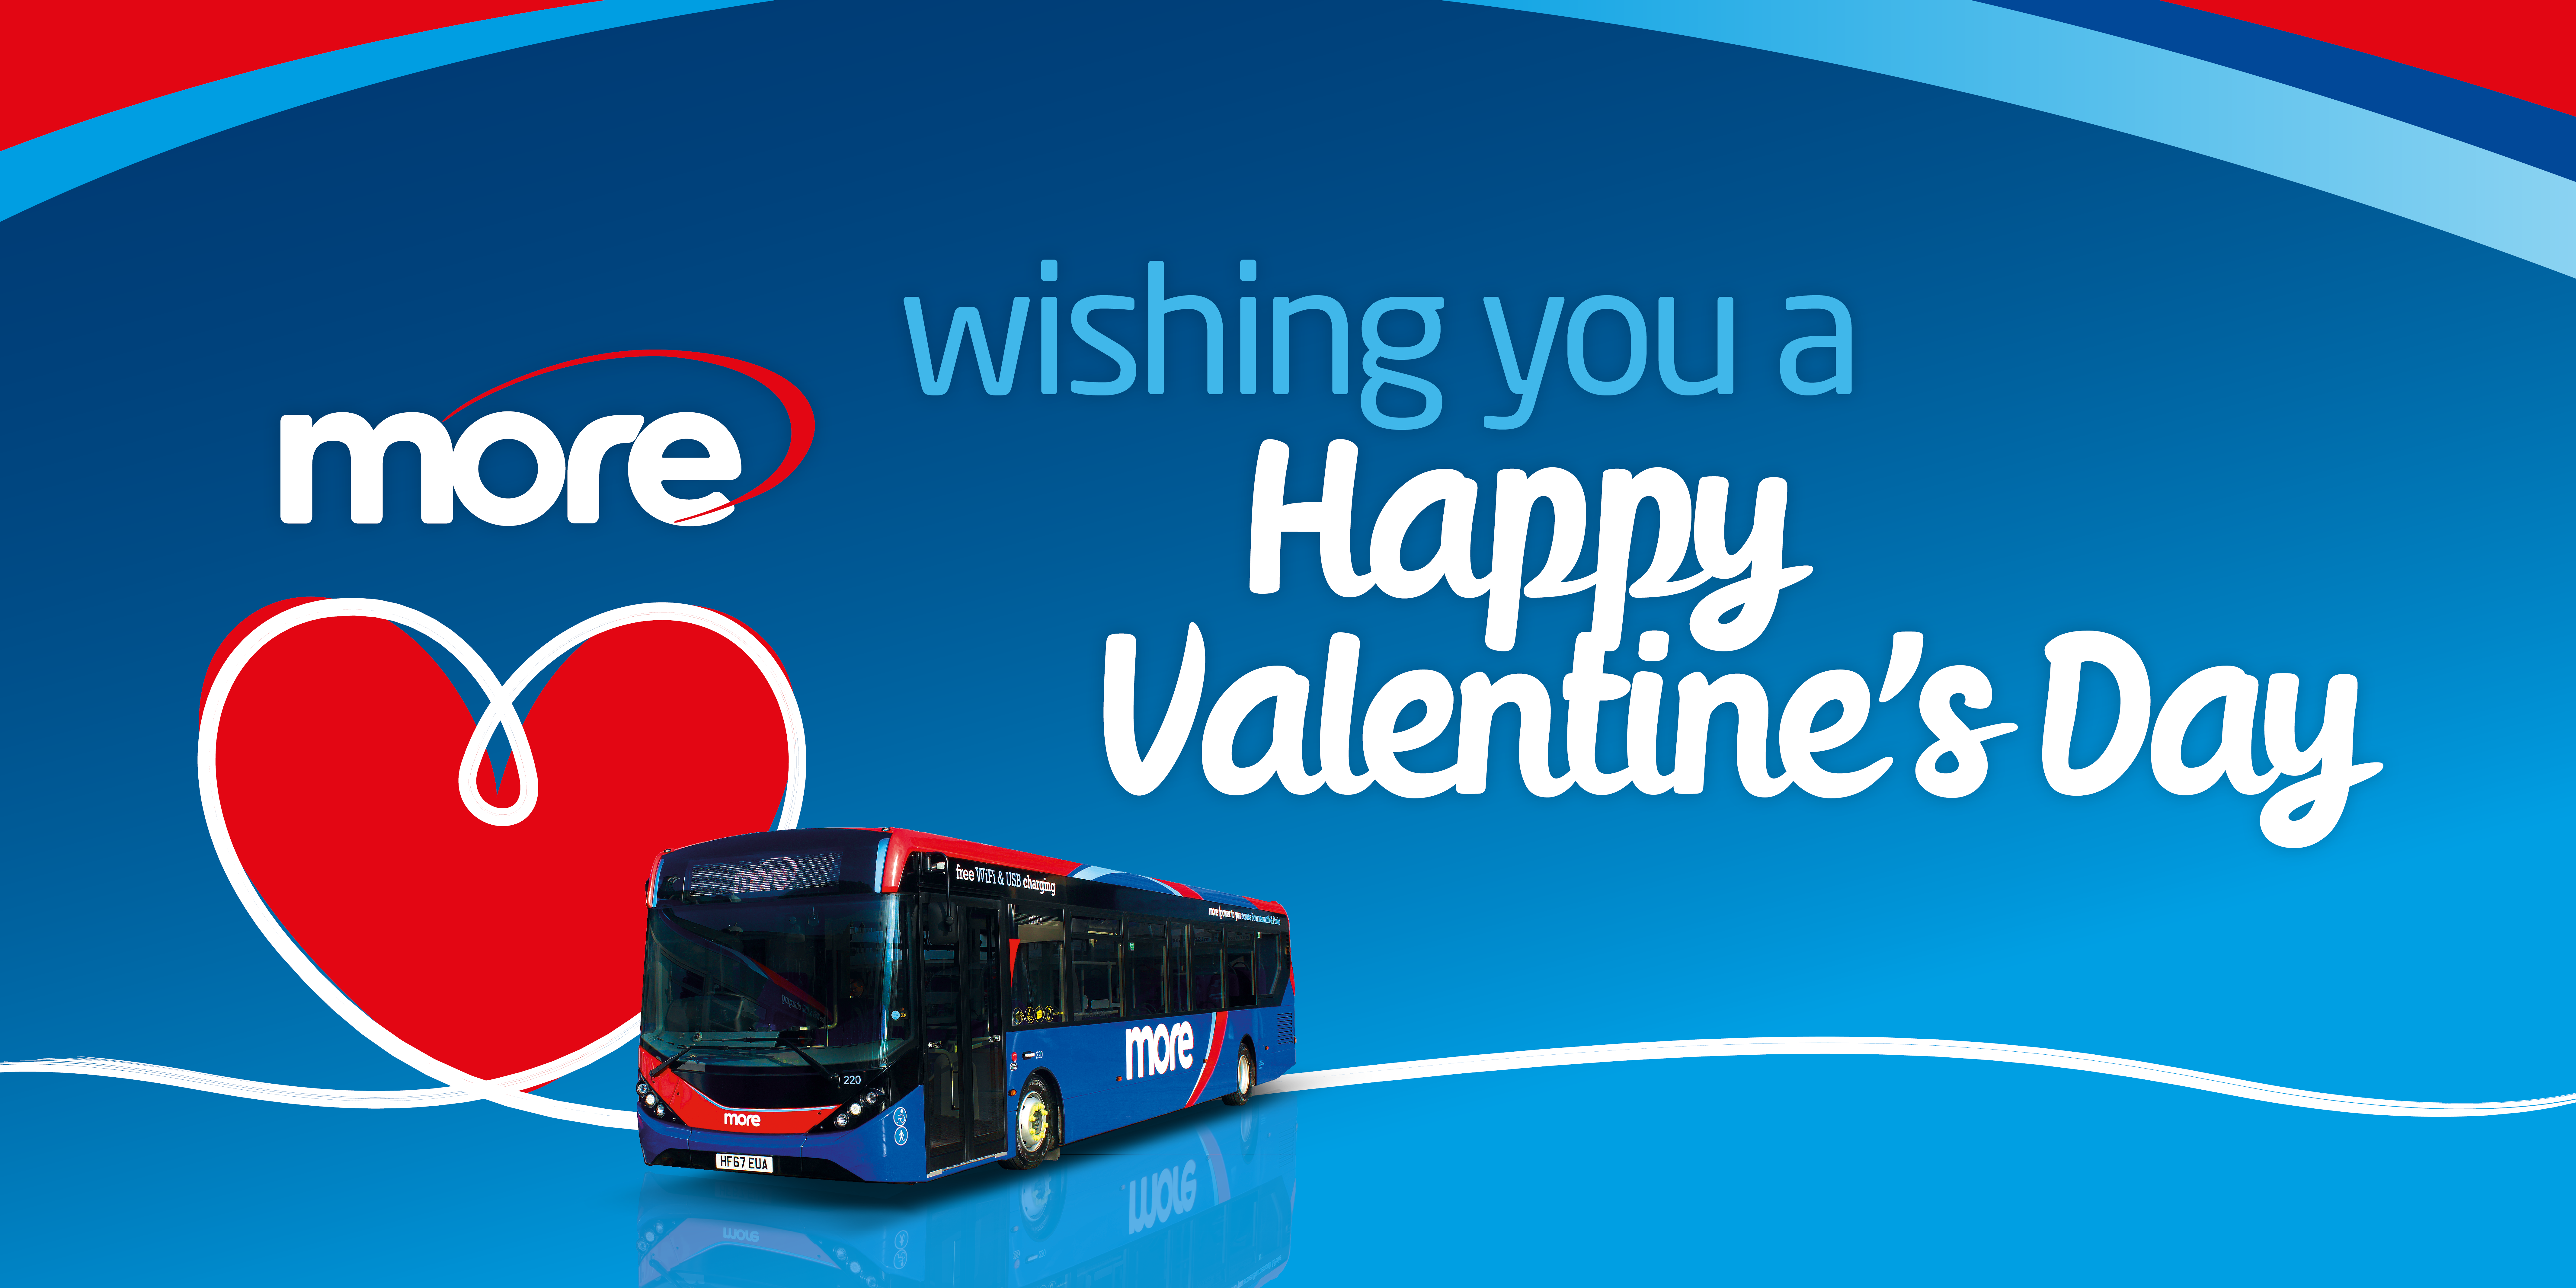 Image of a morebus with text reading 'wishing you a happy valentine's day'